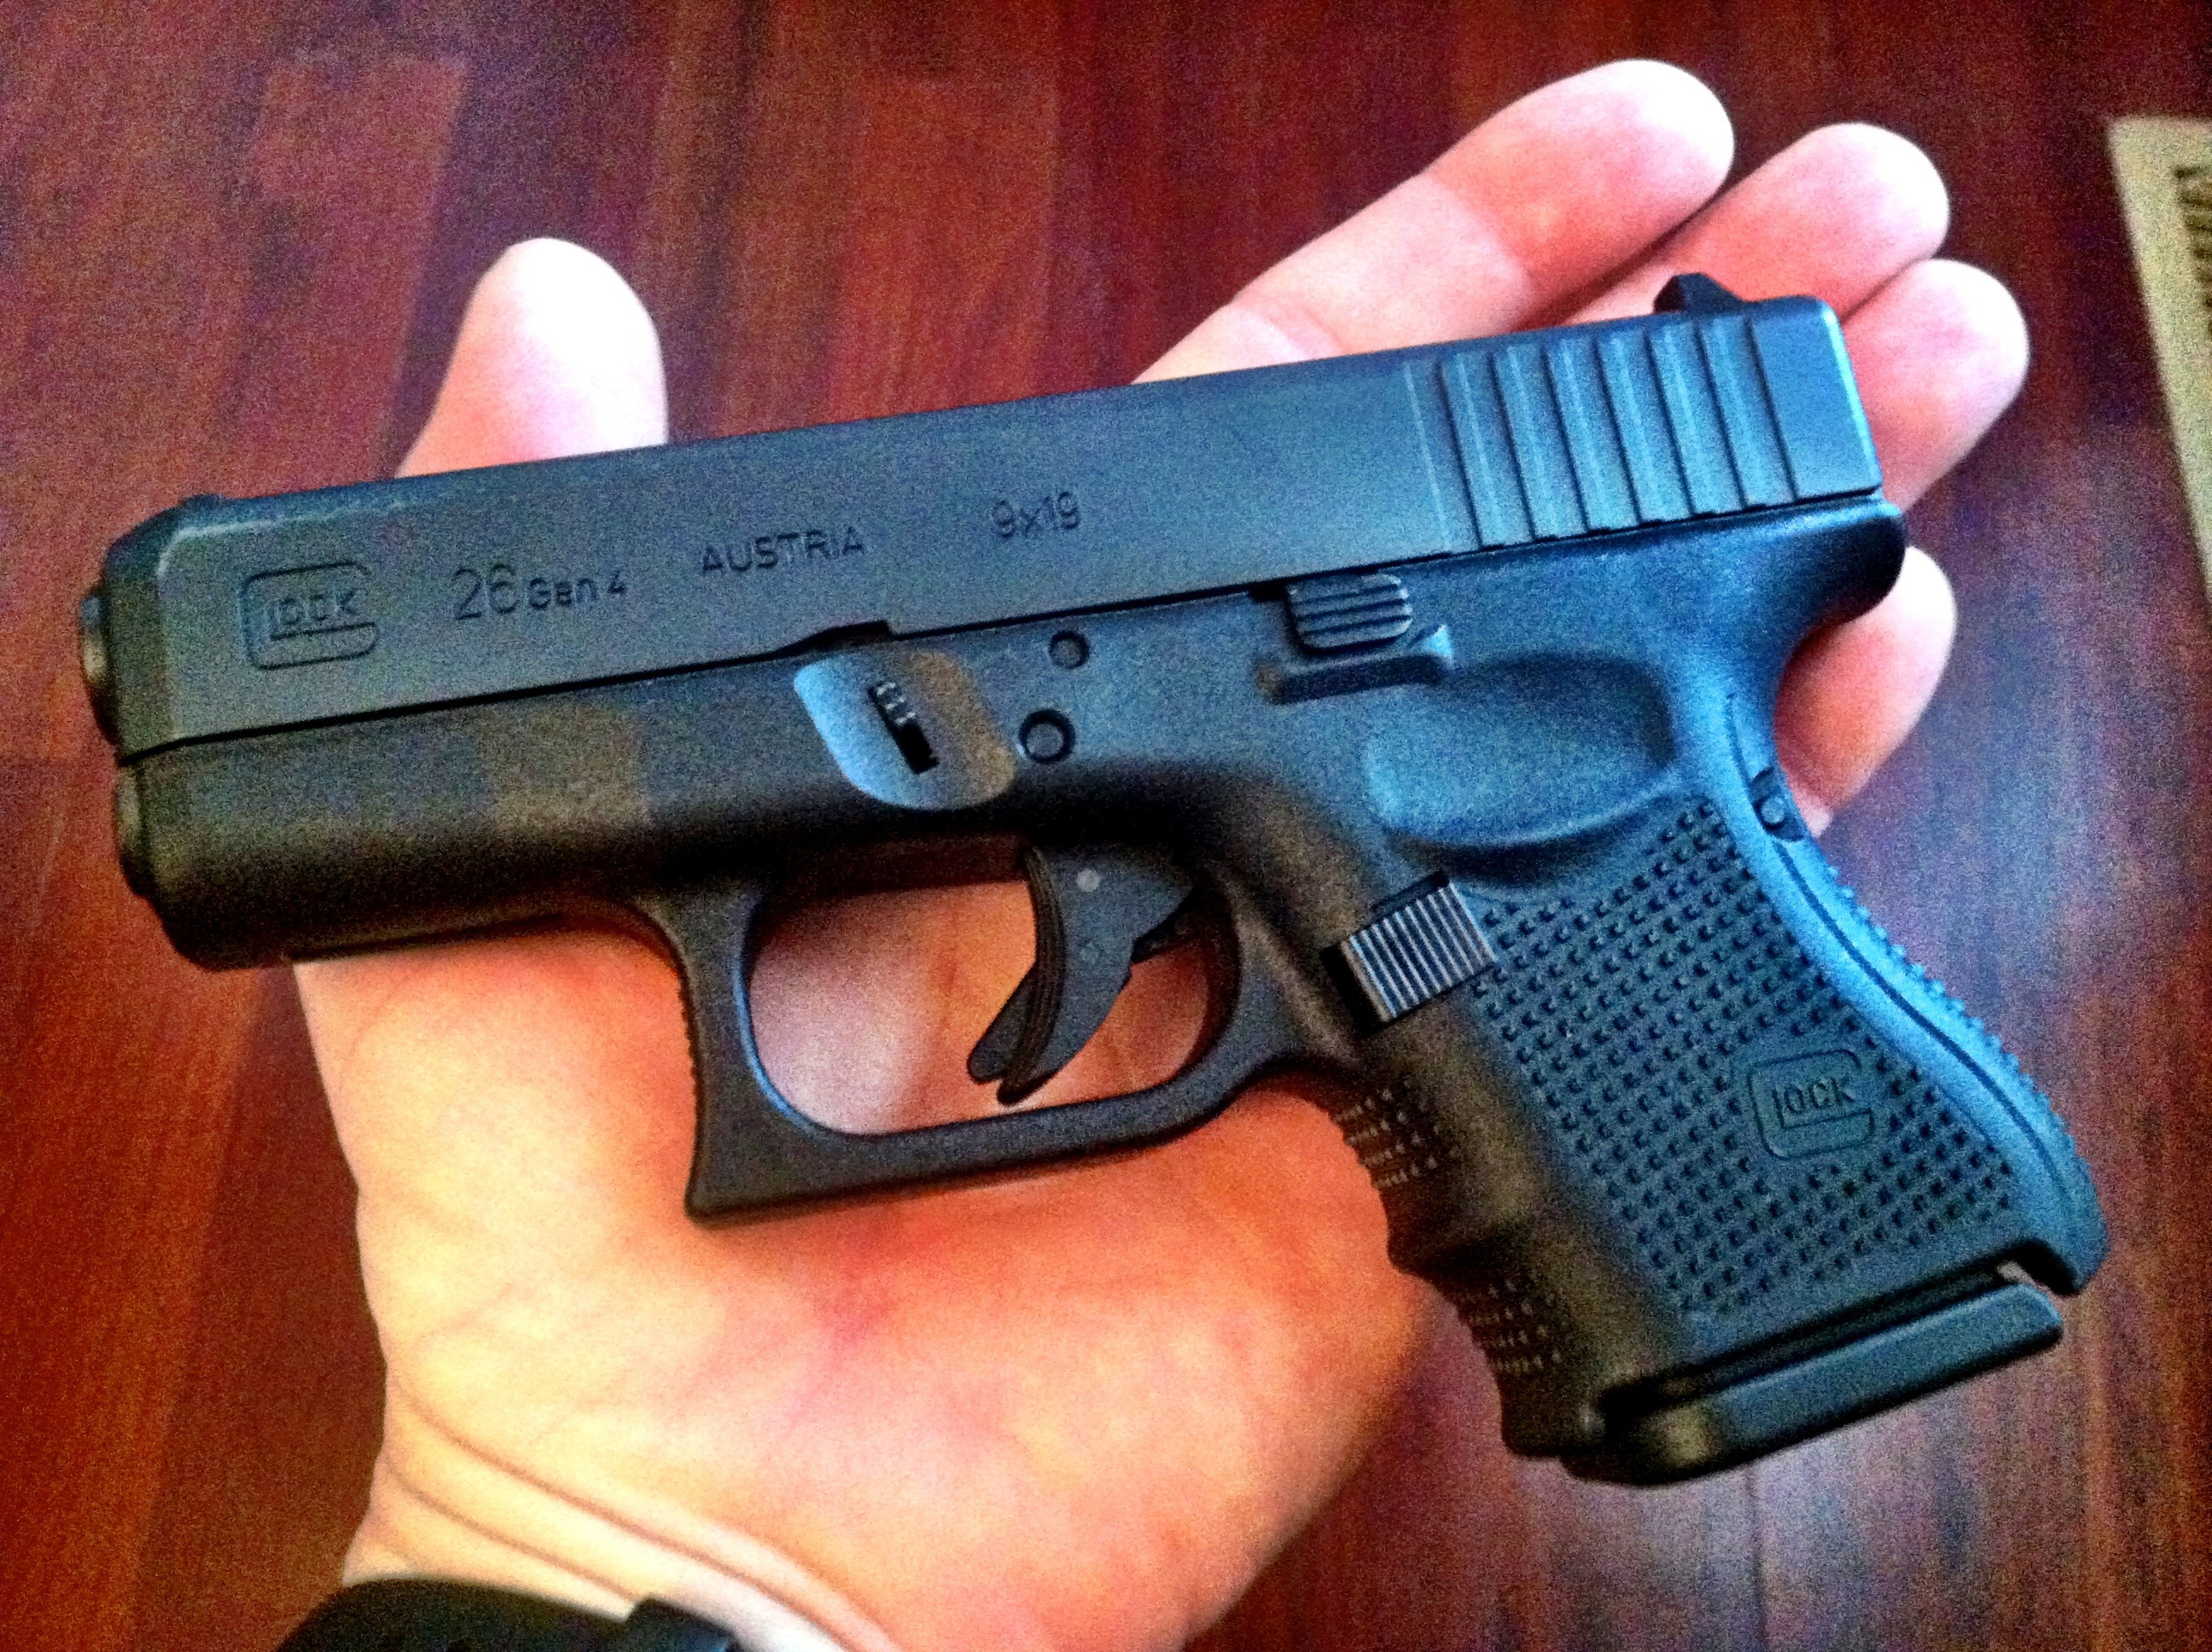 Gun Review Gaston S G I L F The Glock 26 Gen 4